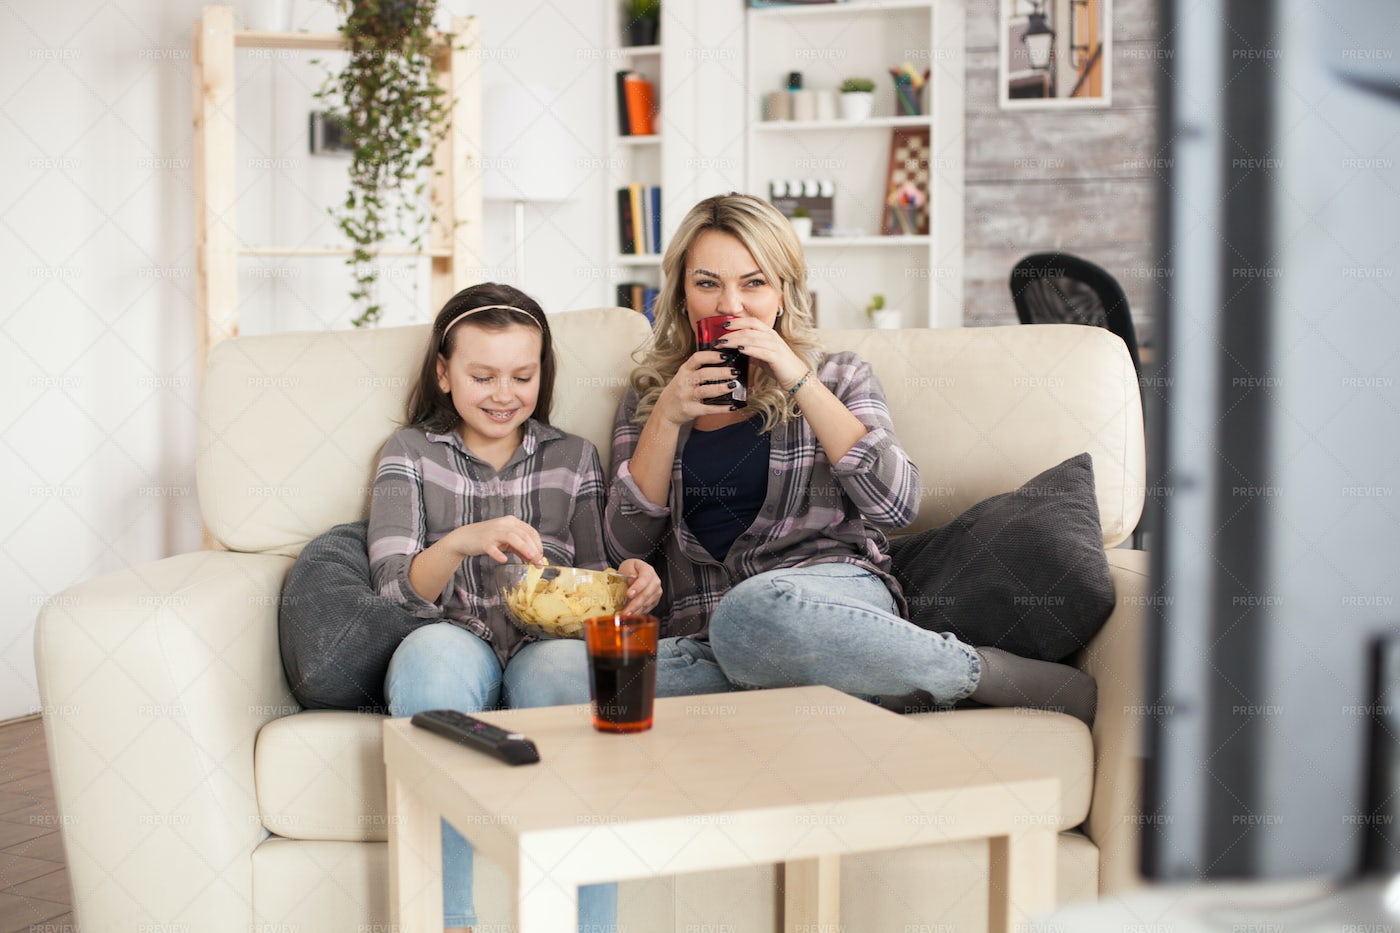 Mother And Daughter In Living Room: Stock Photos